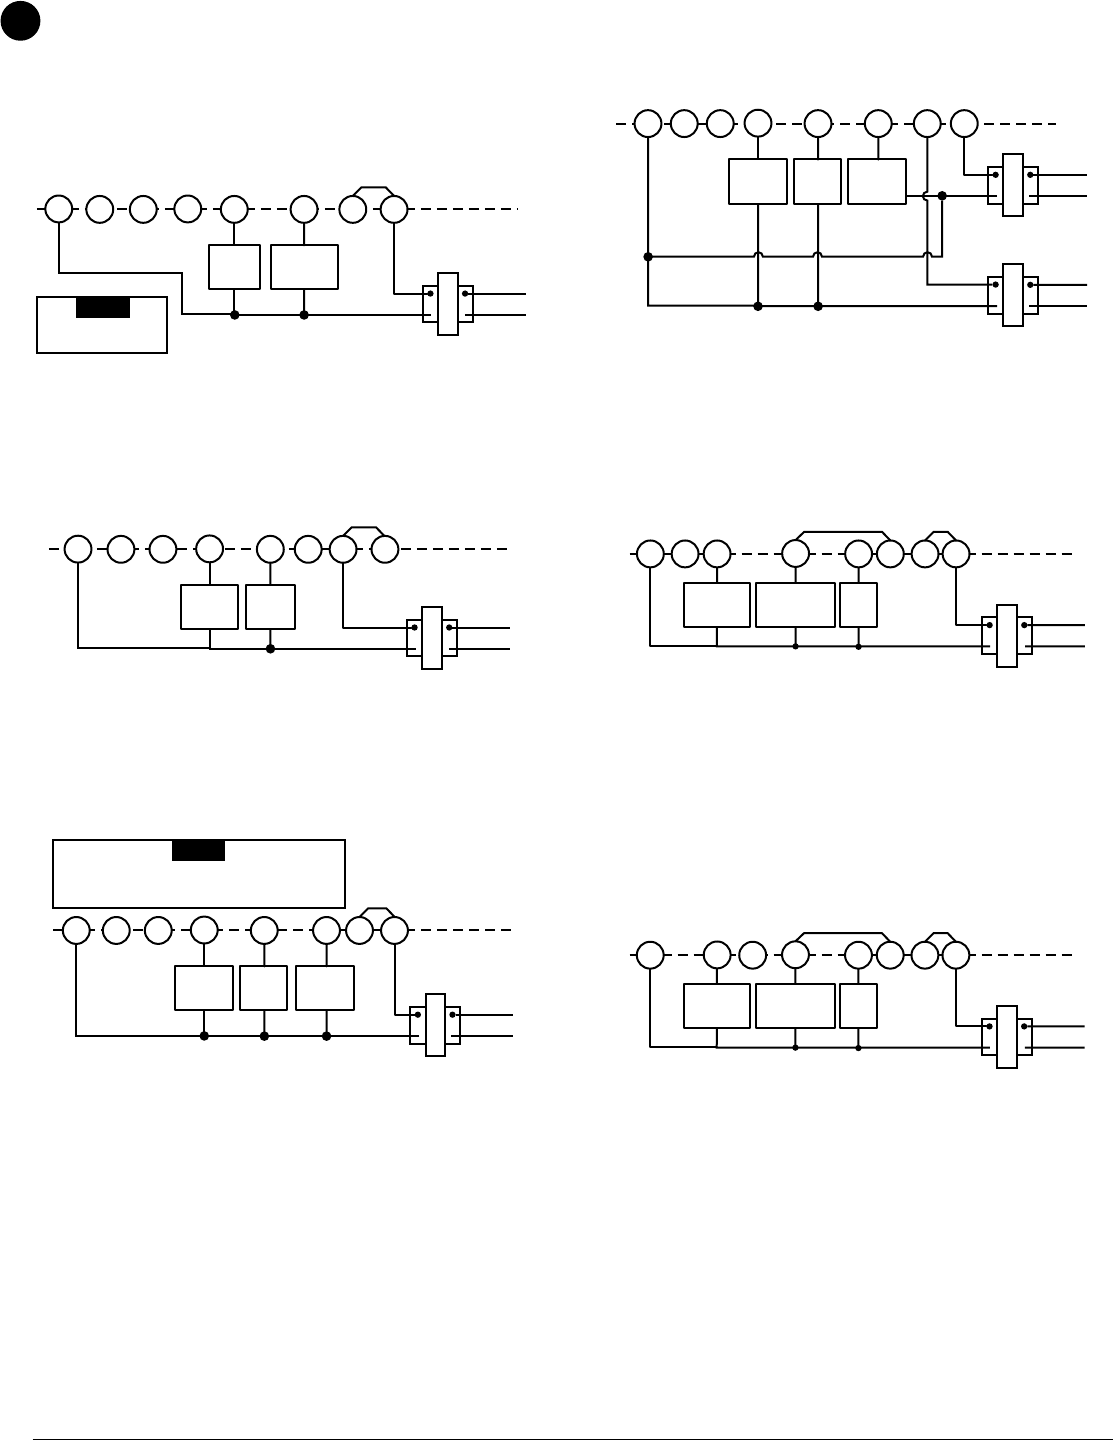 hight resolution of how to wire recessed lighting diagram motor star delta connection